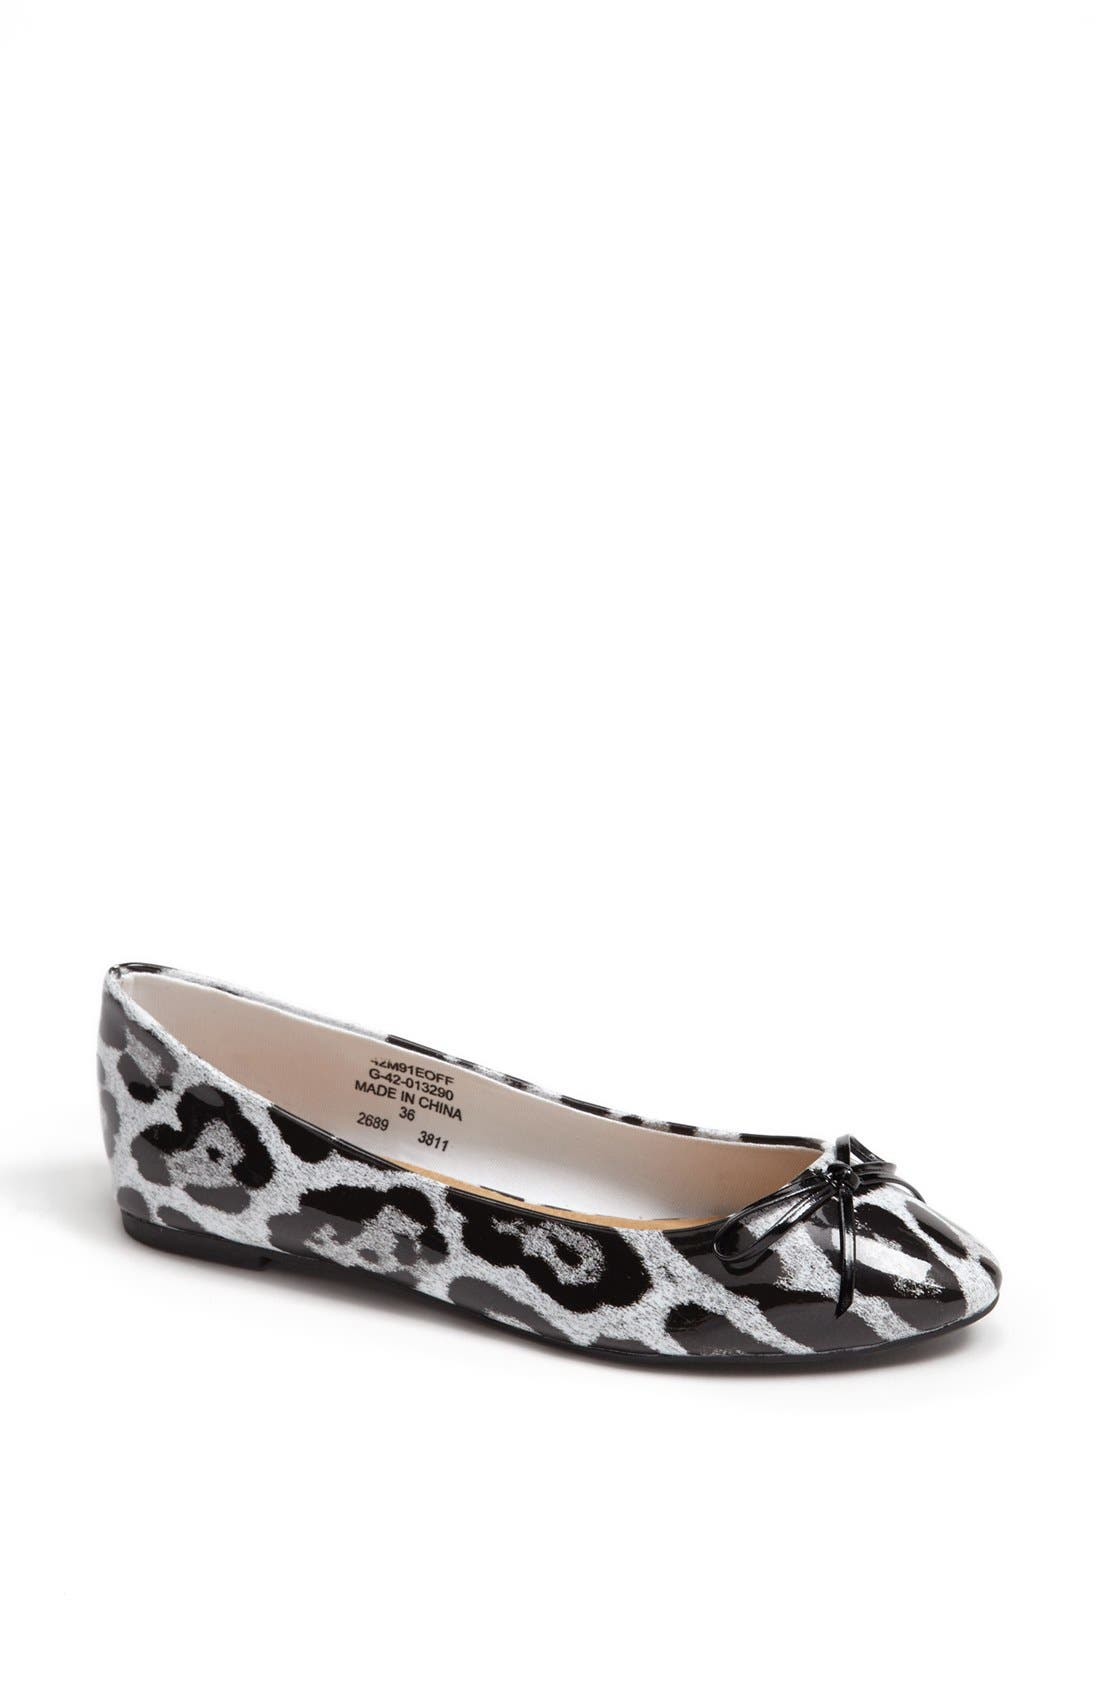 Alternate Image 1 Selected - Topshop 'Mixer' Ballet Flat